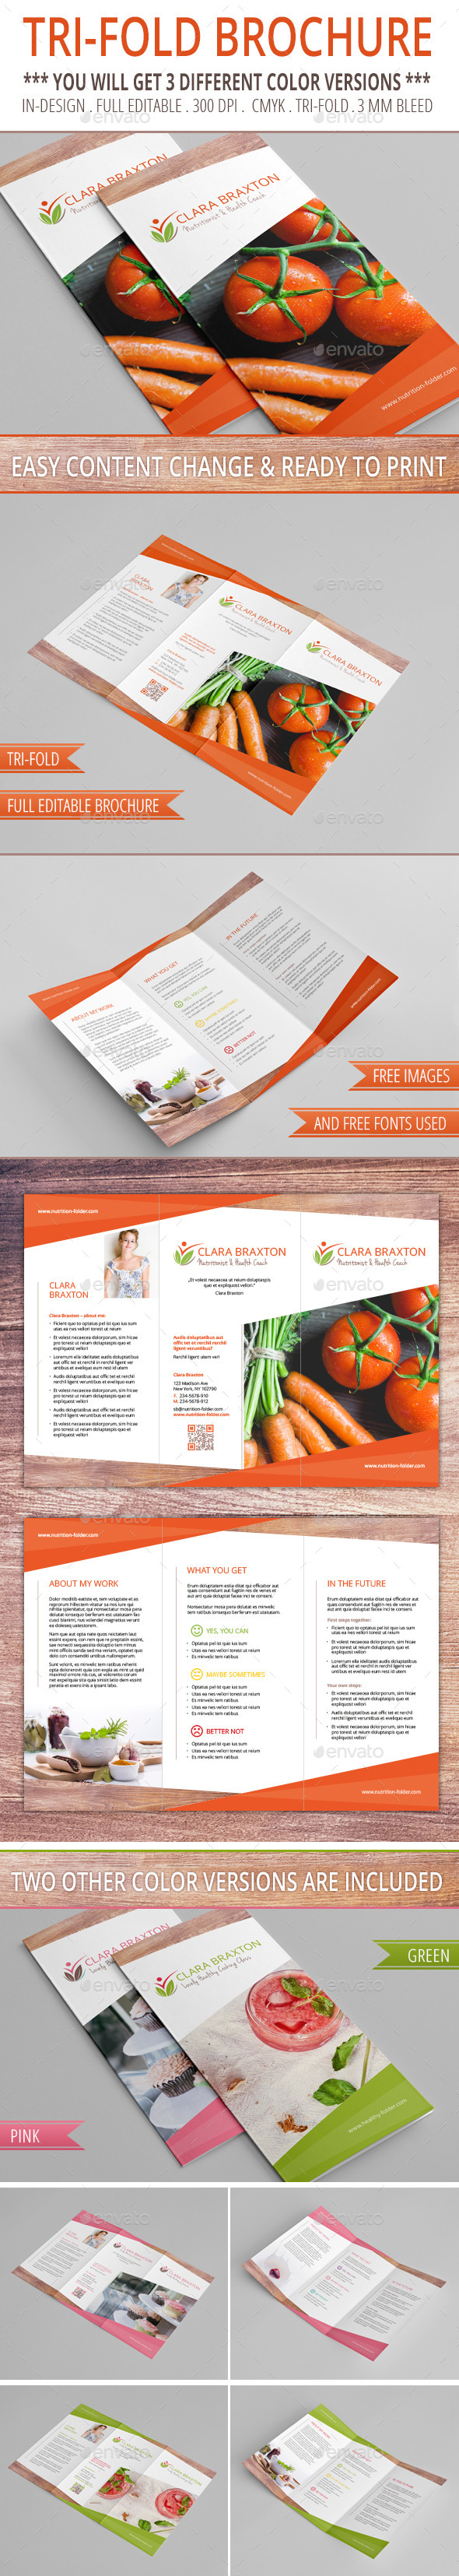 Tri-Fold Brochure with 3 Color Versions - Corporate Brochures